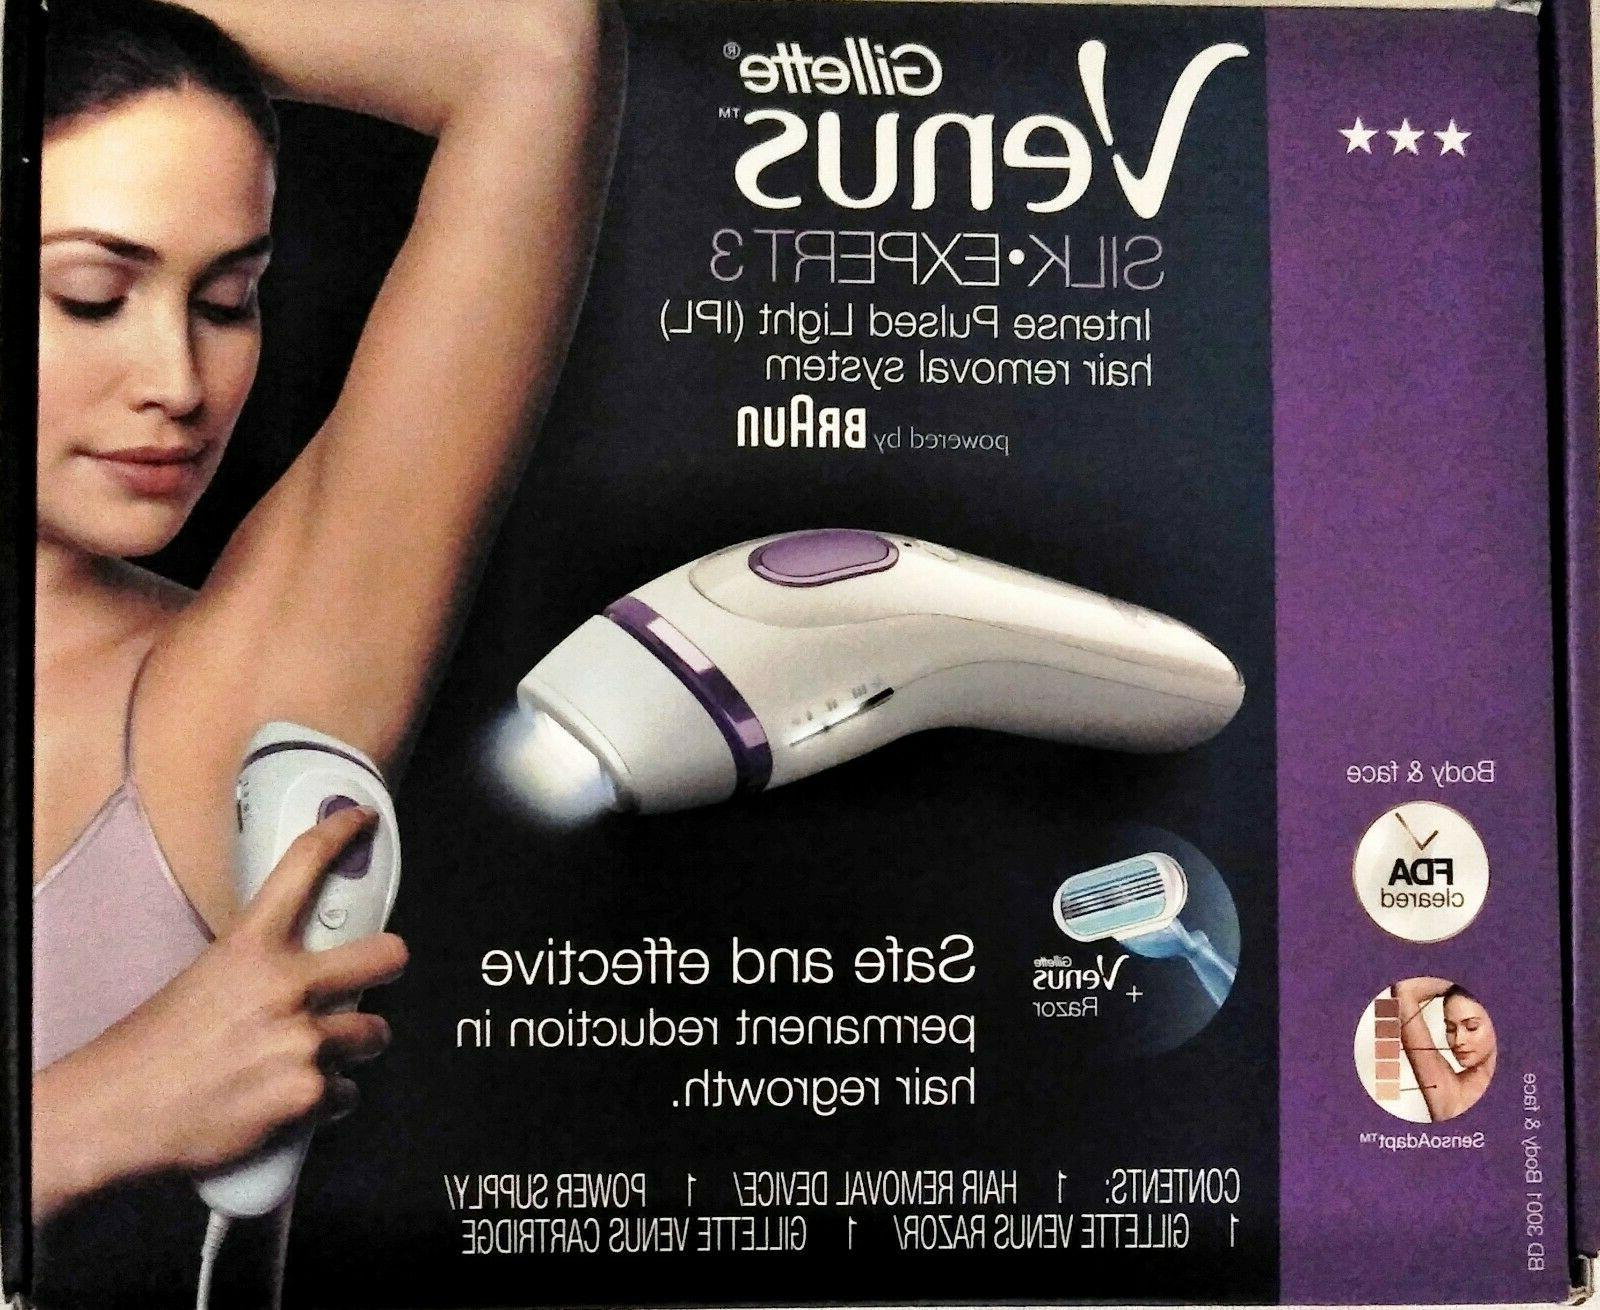 Braun Gillette Venus Silk Expert Intense Pulsed Light Bd